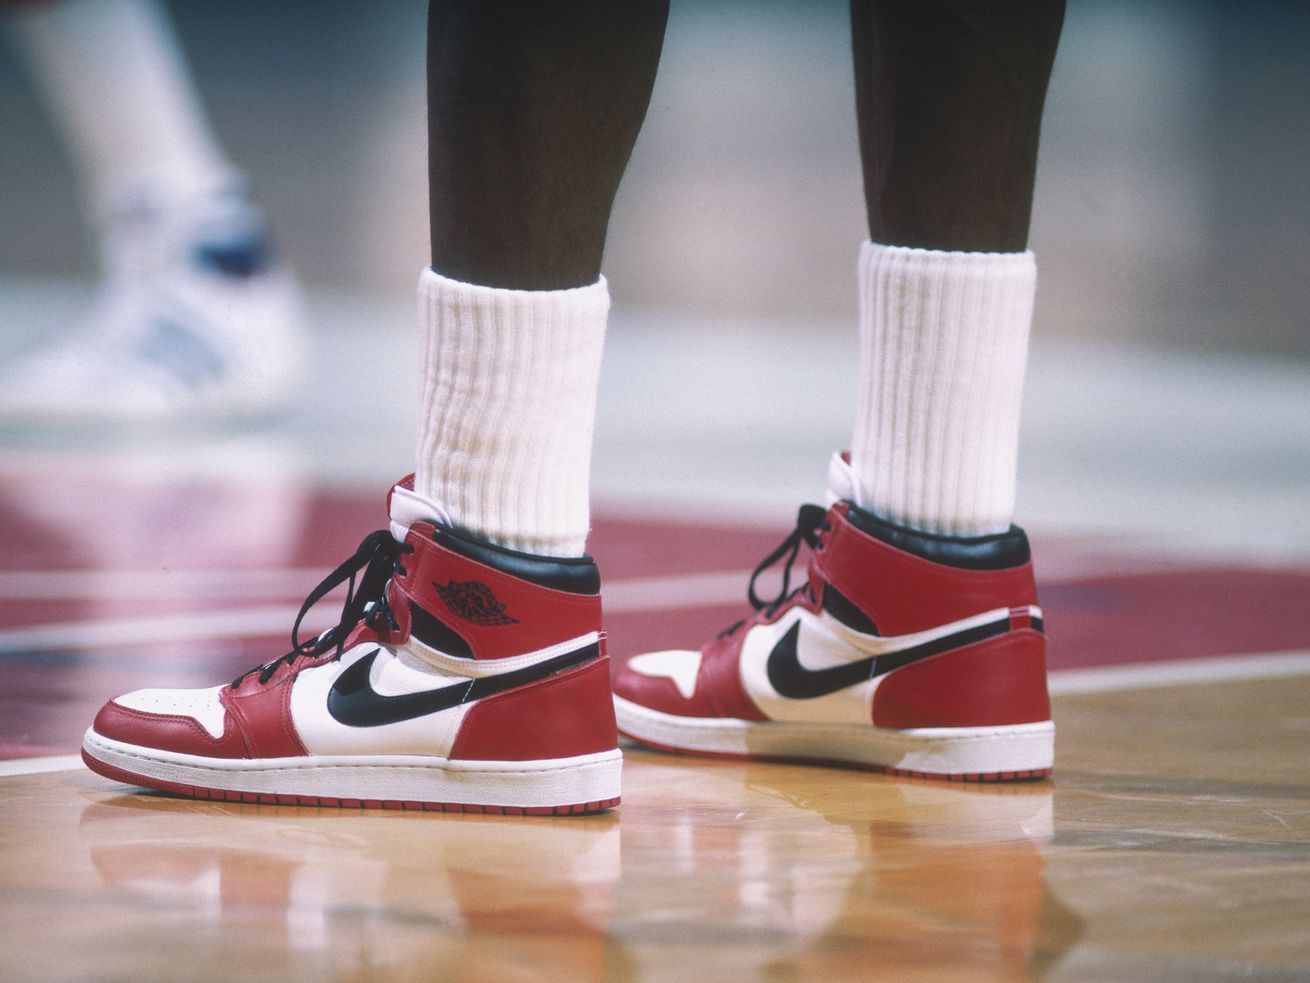 Air Jordans helped usher in contemporary sneaker culture, but youth violence related to the shoes made headlines in the late 1980s and early '90s.